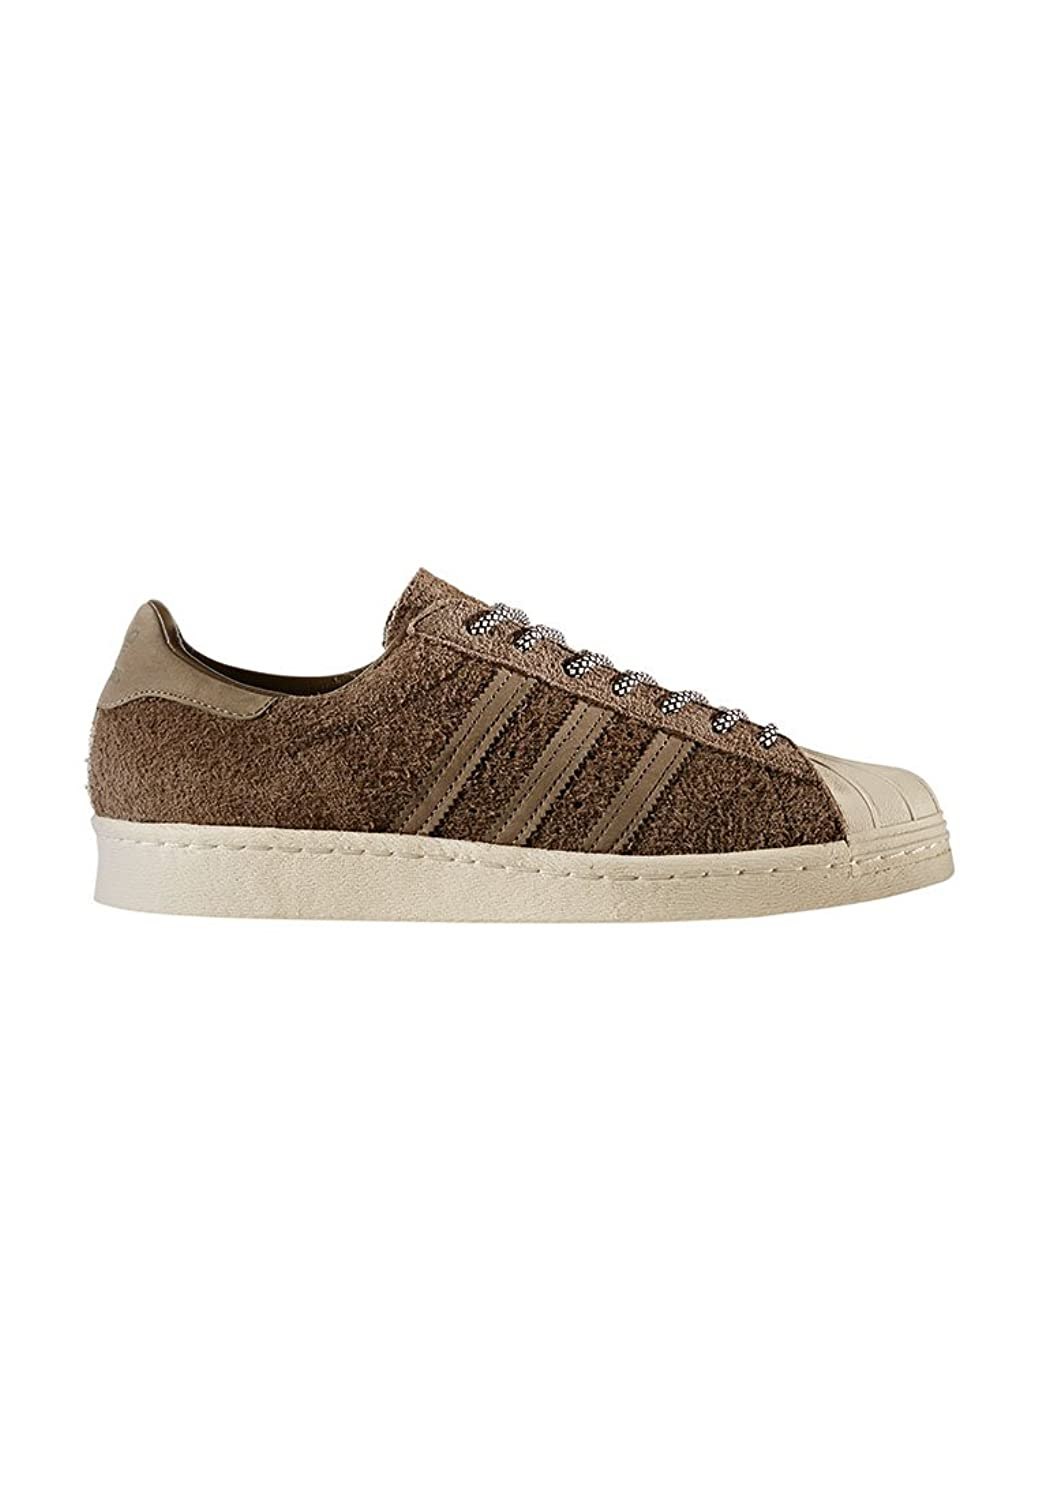 Superstars Adidas Khaki